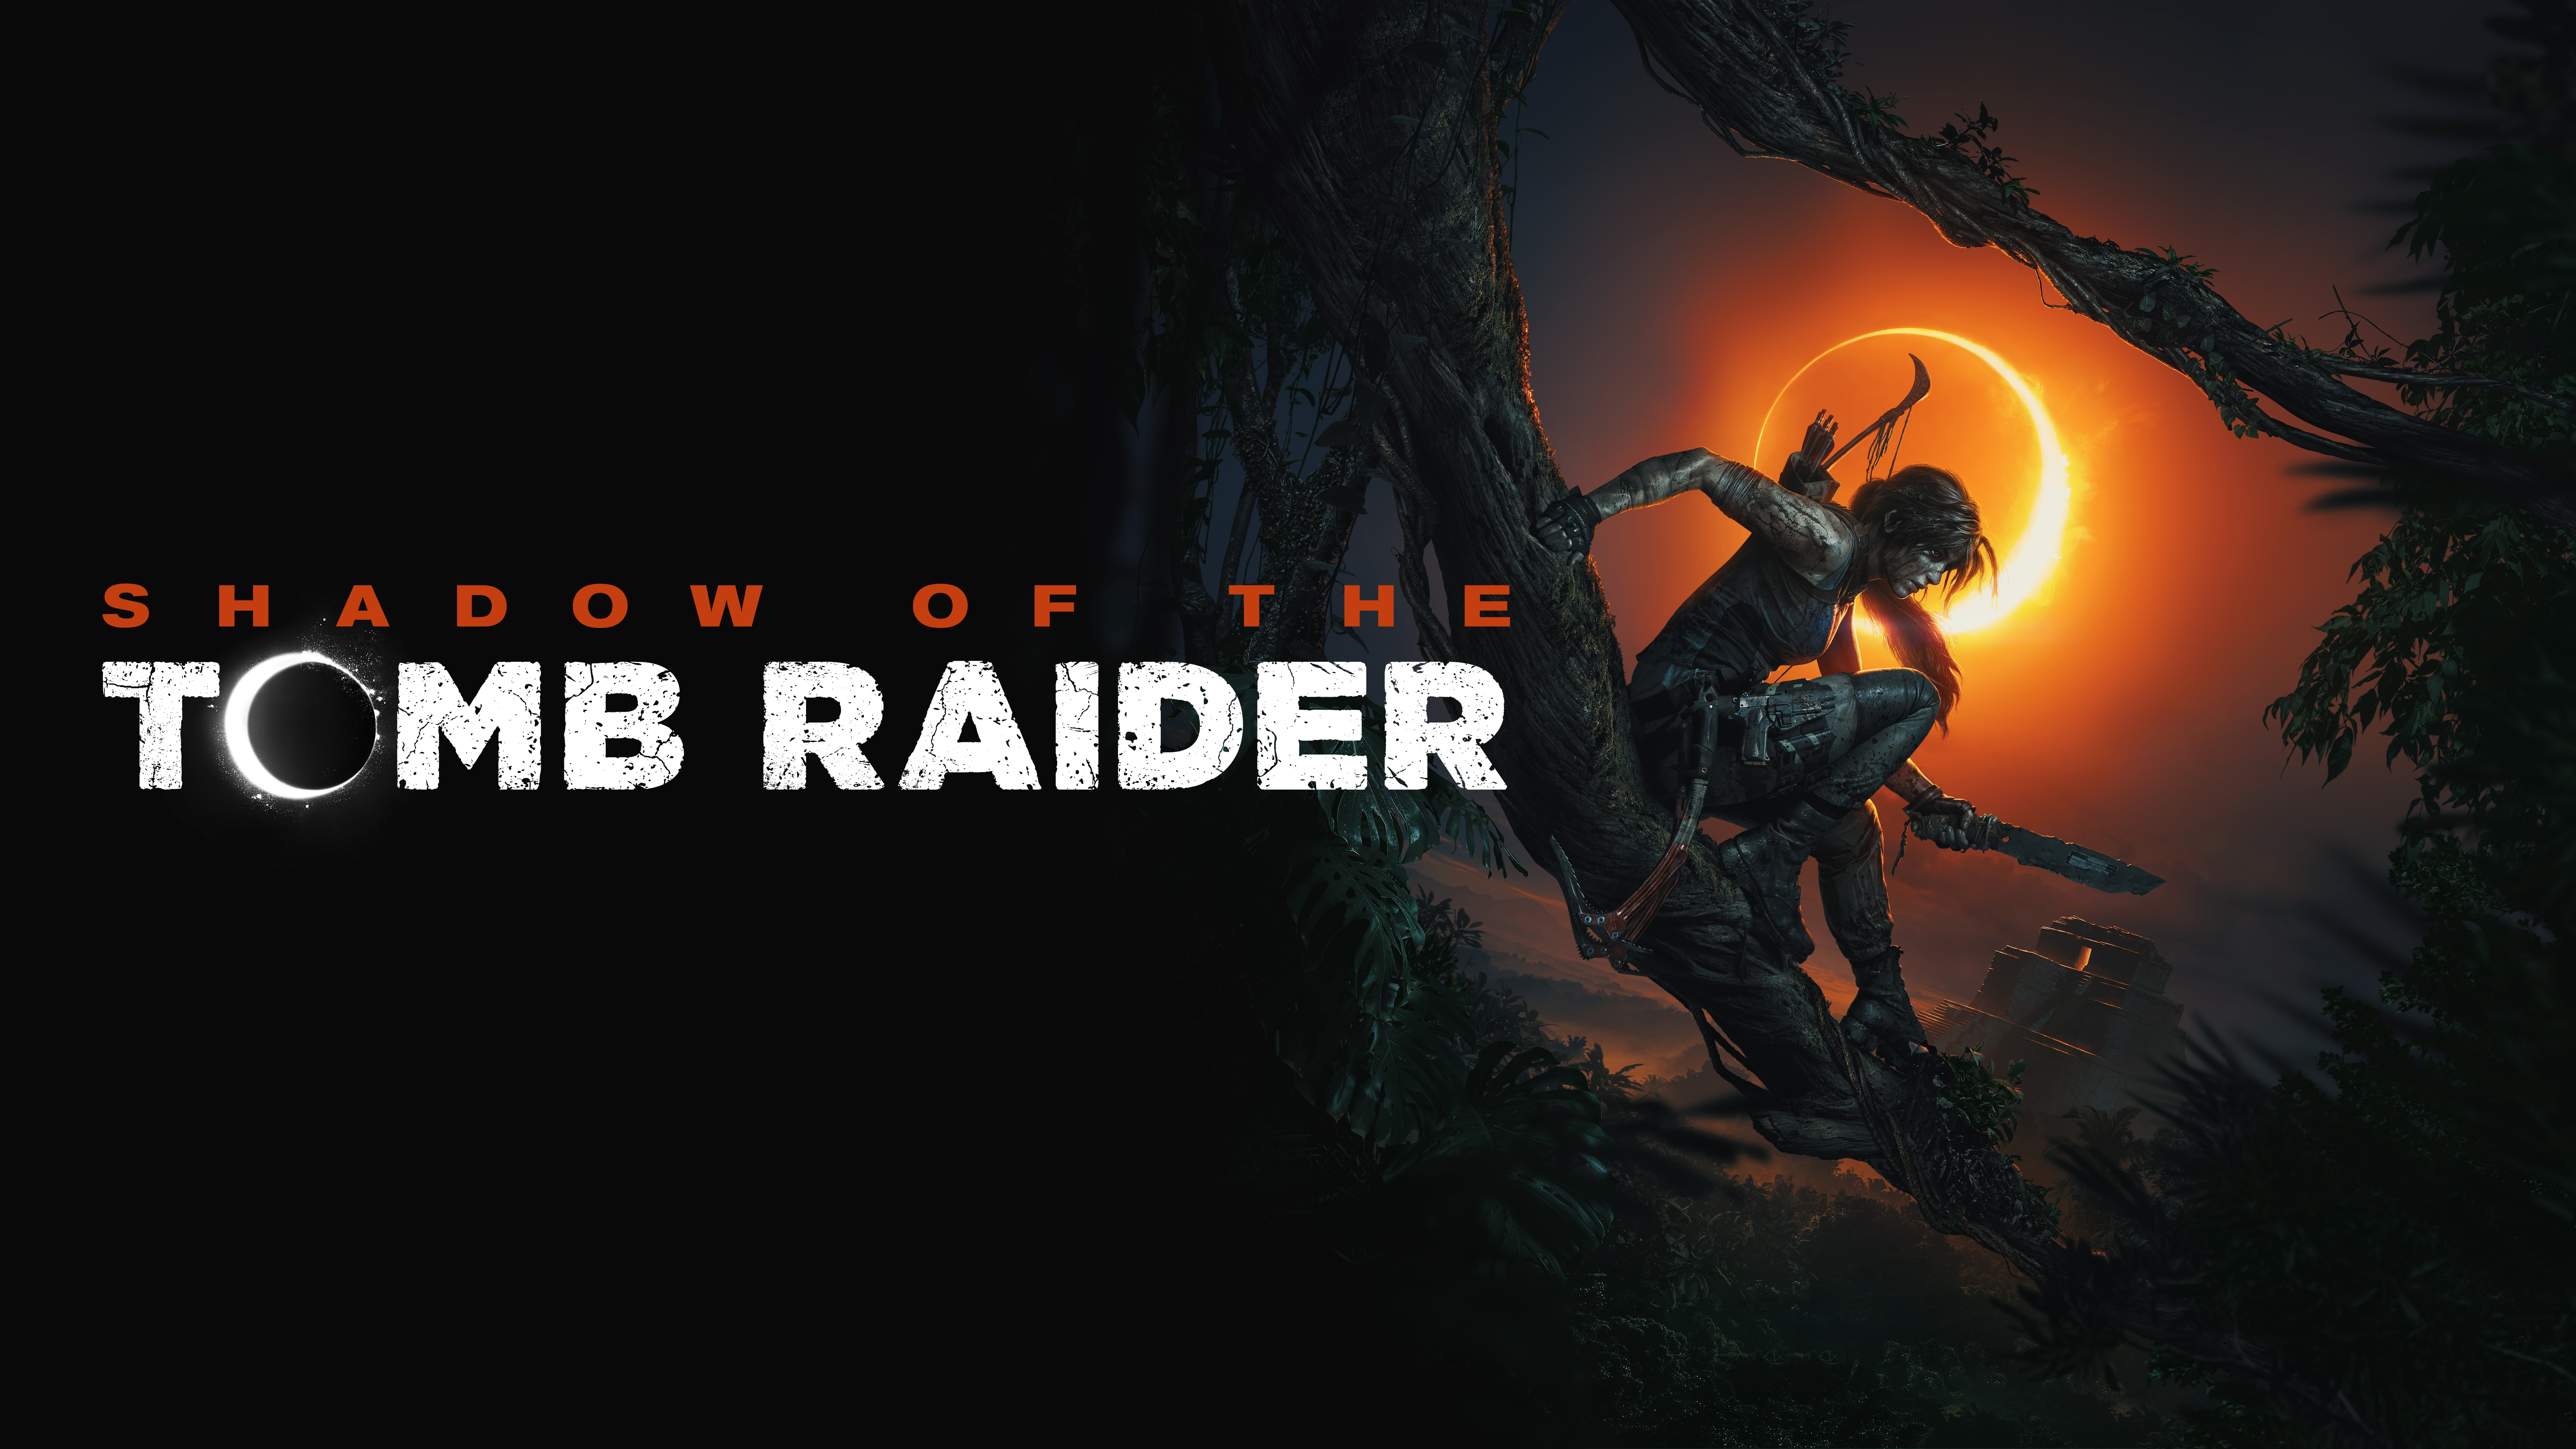 Shadow of the Tomb Raider Logo Lara Croft 8K #15434.